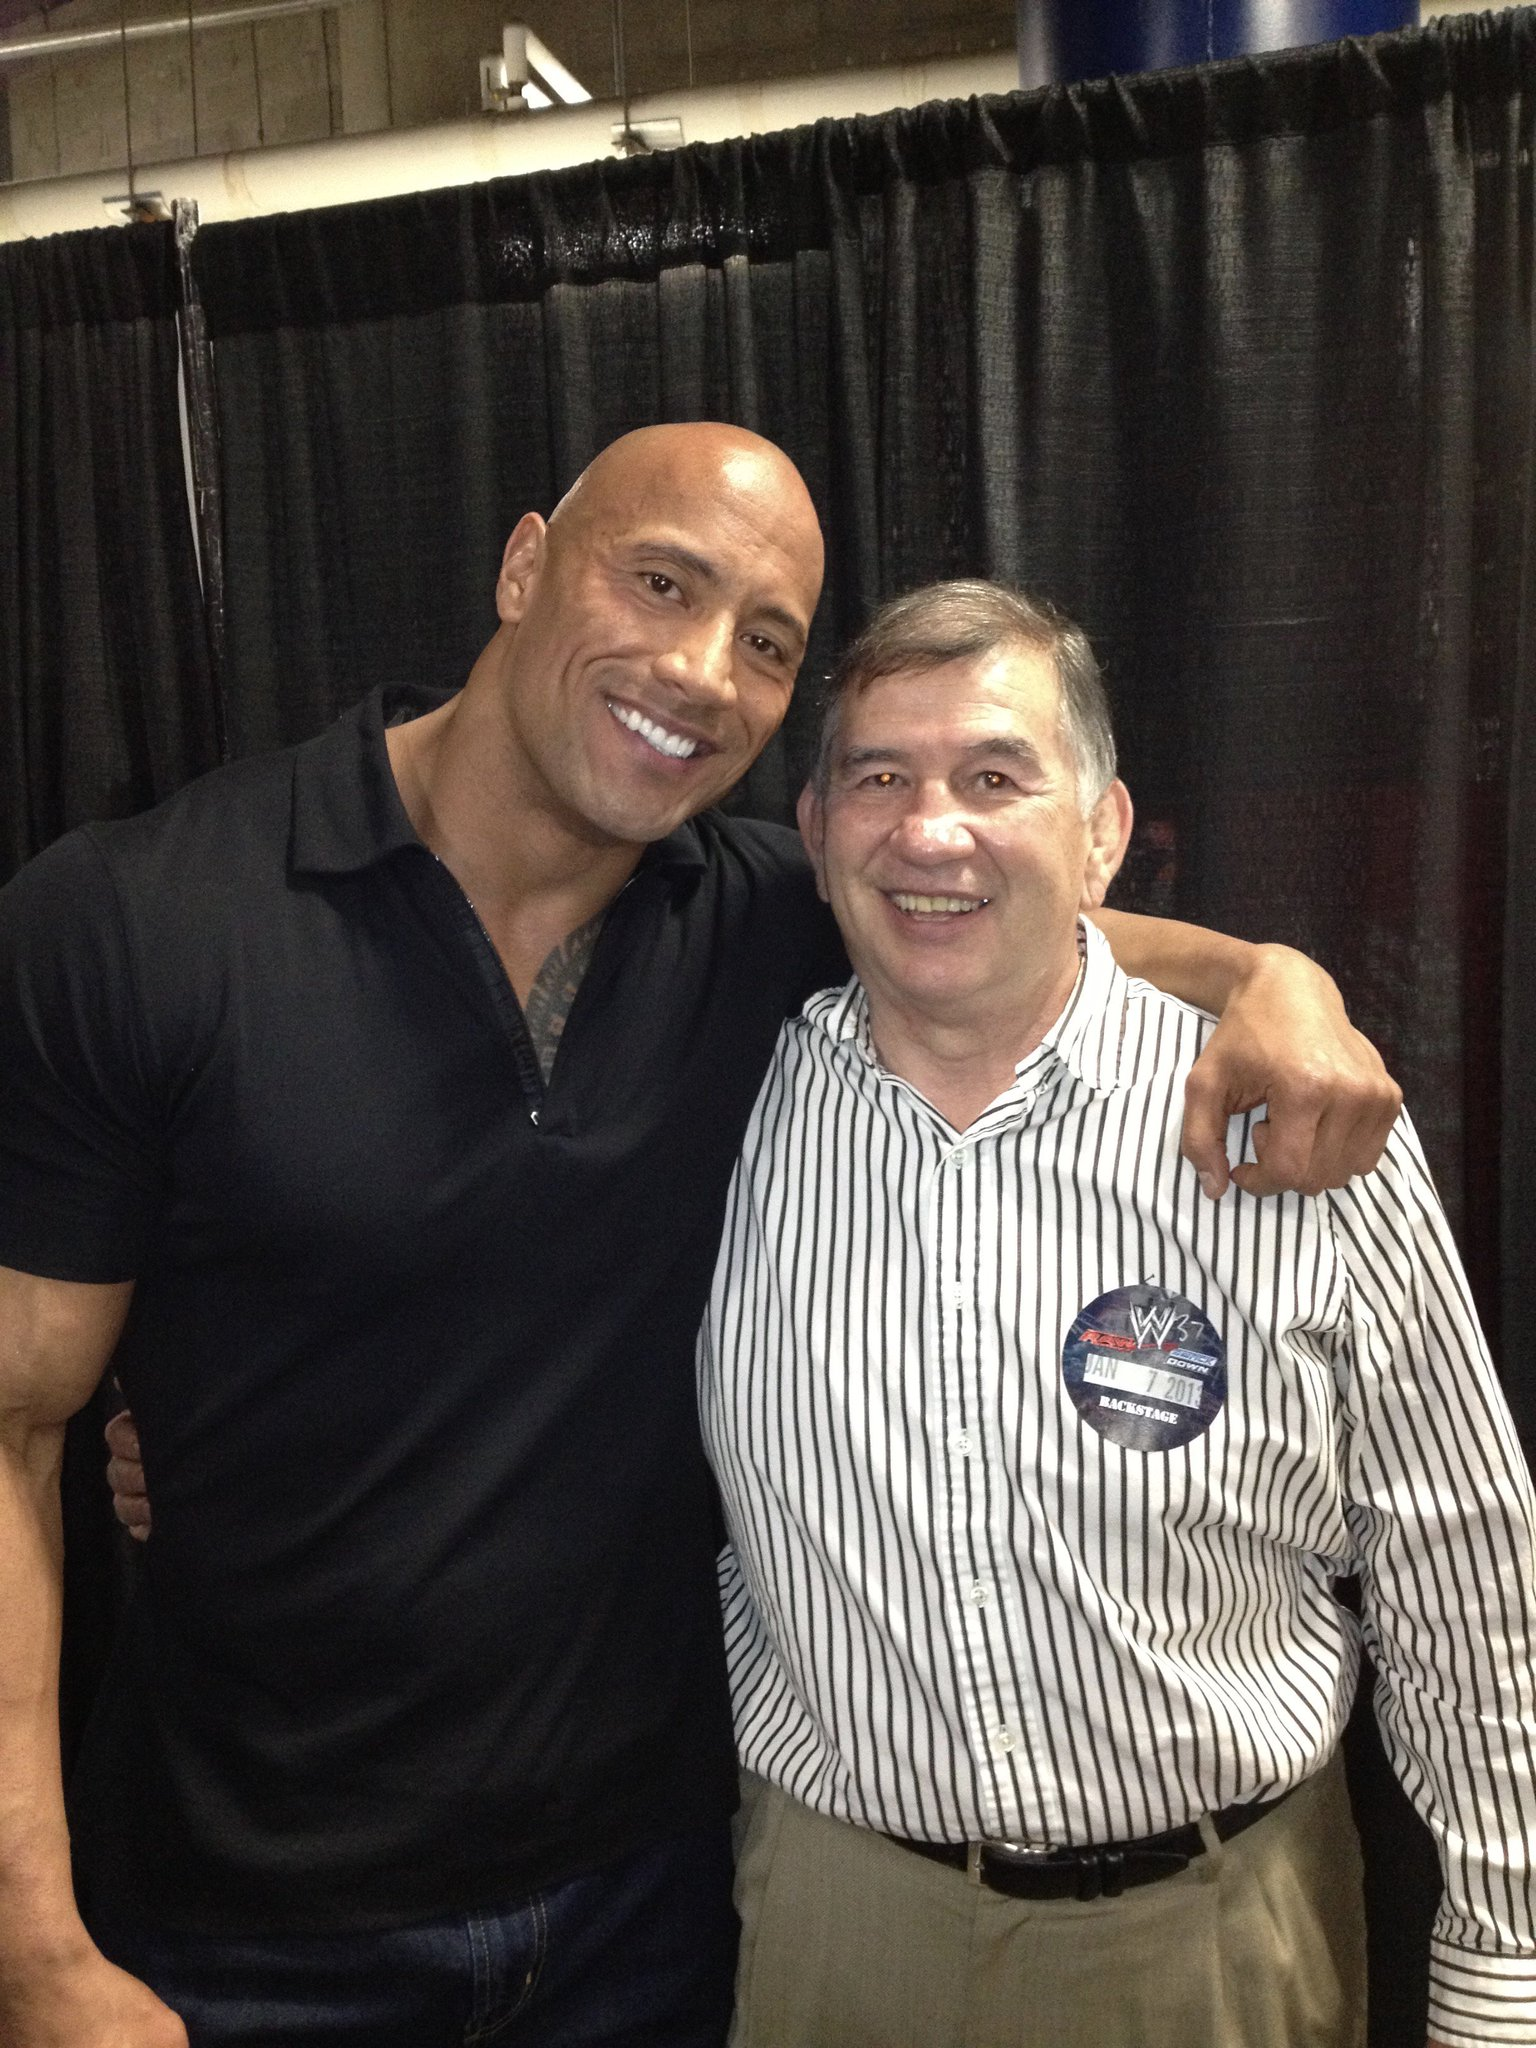 a photo of the sexiest man in the world and @TheRock https://t.co/hsIesv6xl4